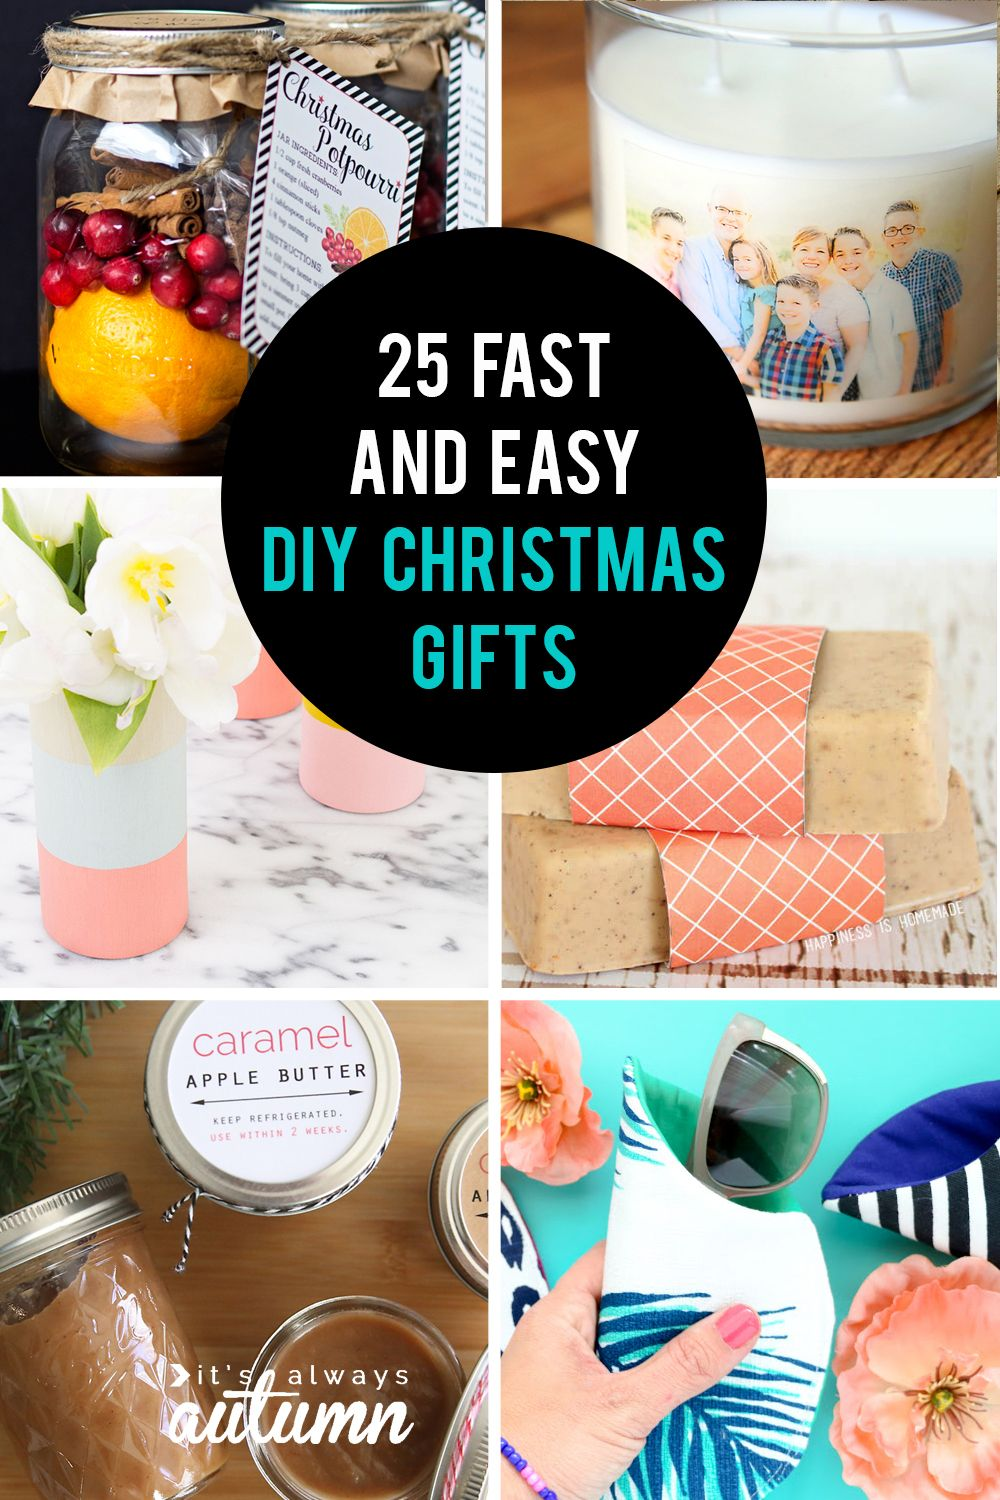 25 Easy Homemade Christmas Gifts You Can Make In 15 Minutes It S Always Autumn Easy Homemade Christmas Gifts Easy Homemade Gifts Easy Diy Christmas Gifts